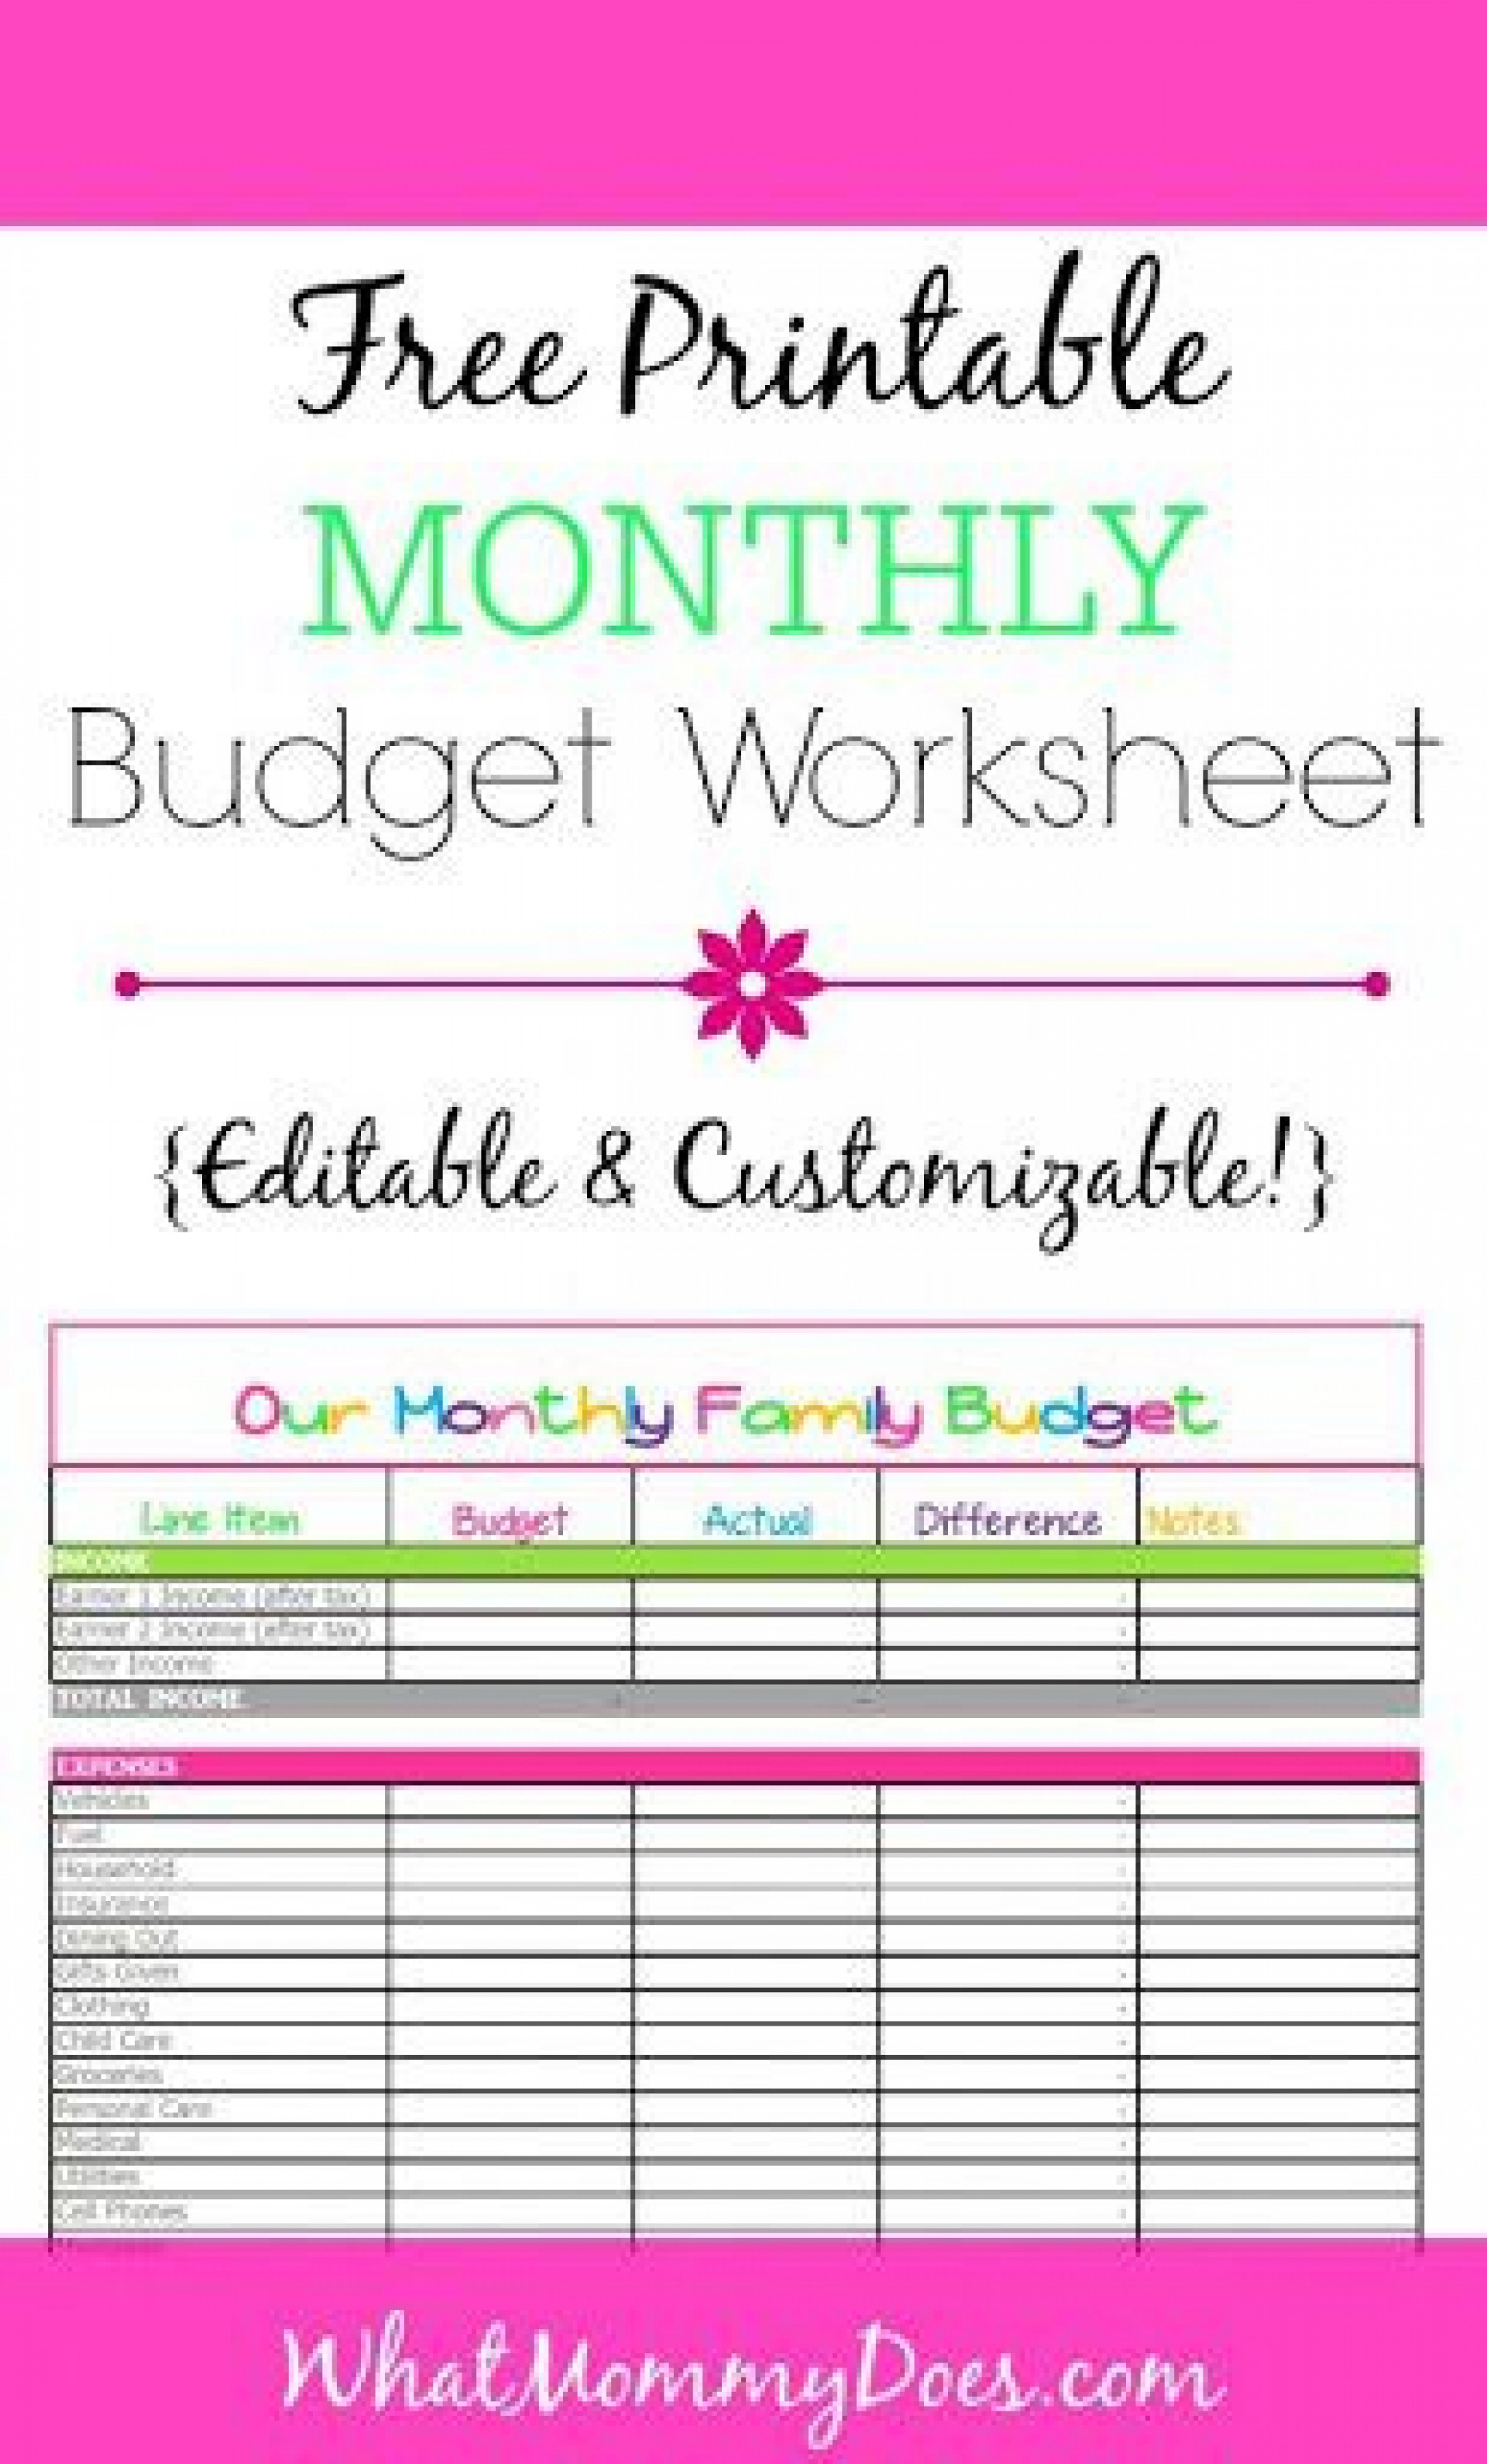 000 Exceptional Free Monthly Budget Worksheet Printable High Def  Template Family Blank1920